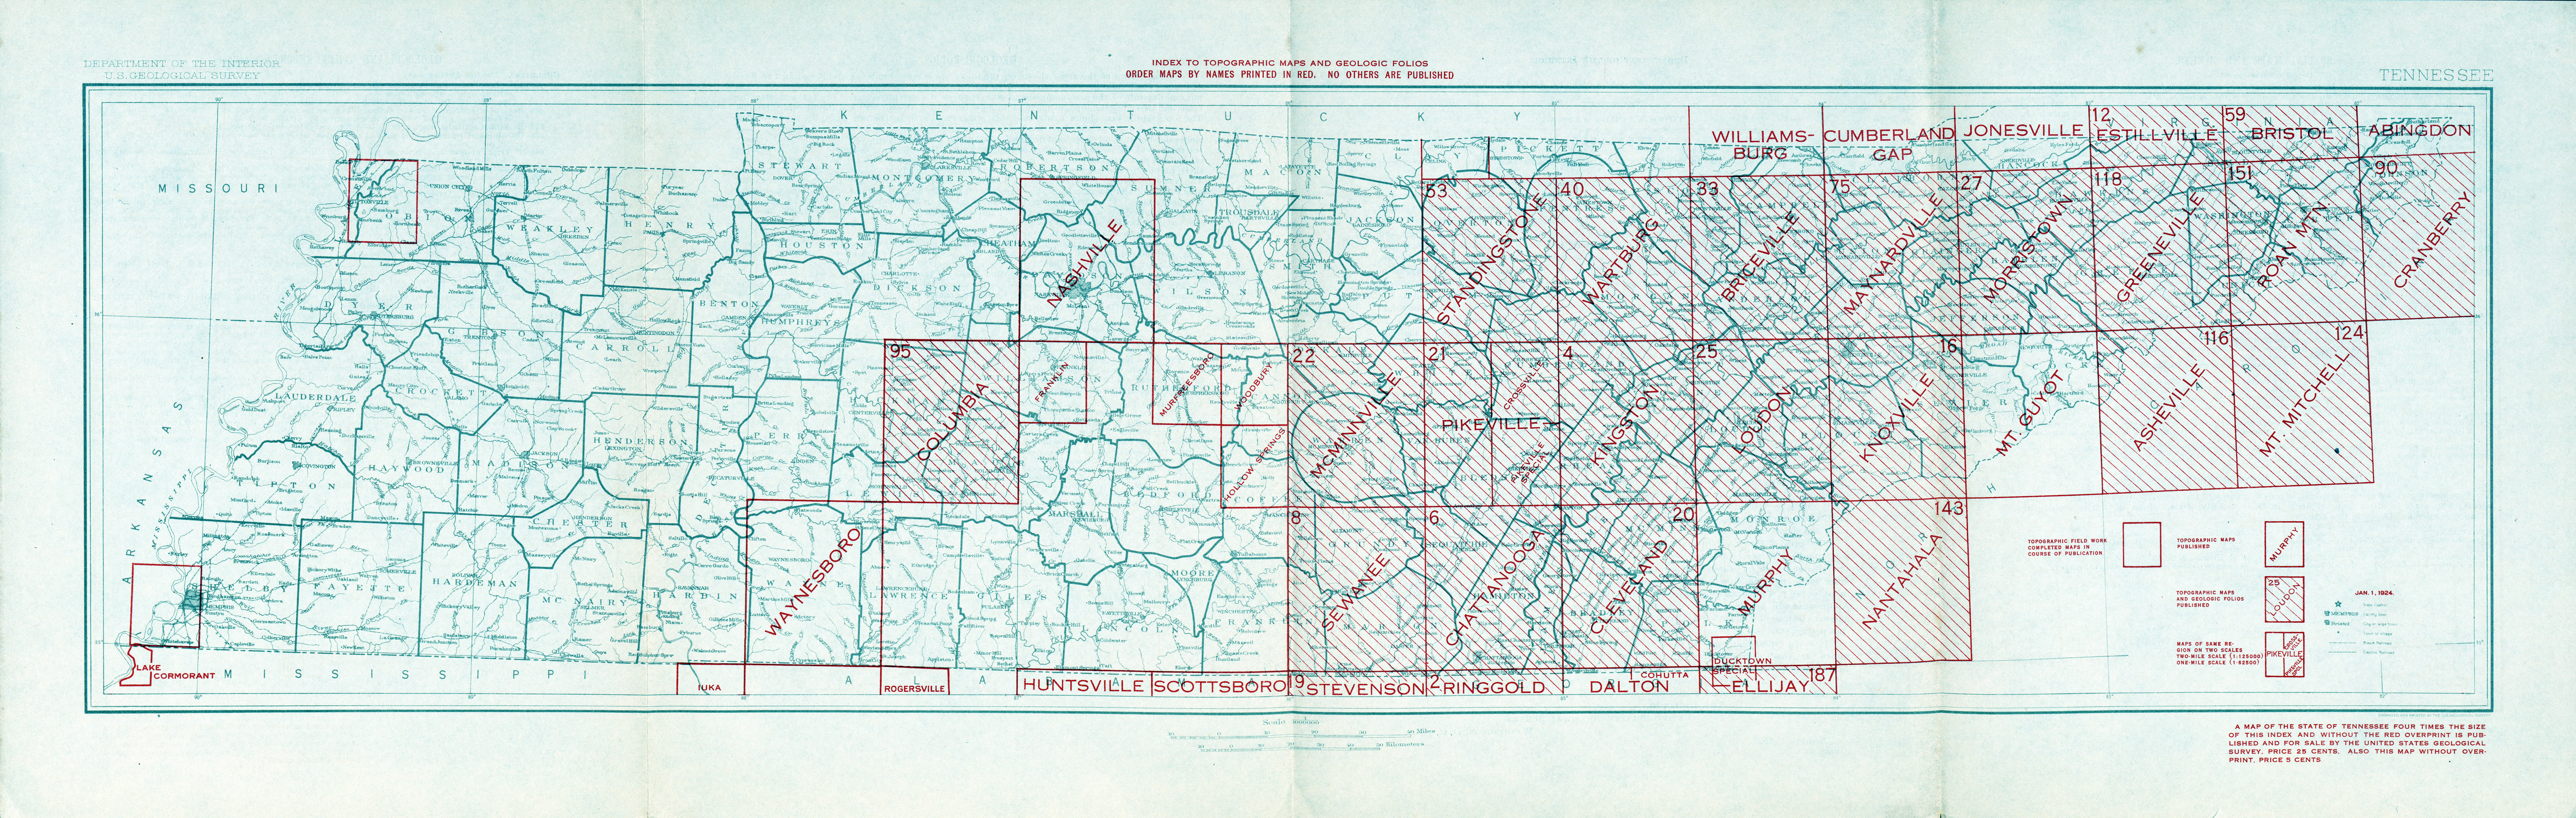 Tennesse Historical Topographic Maps PerryCastañeda Map - Where to buy us topo maps